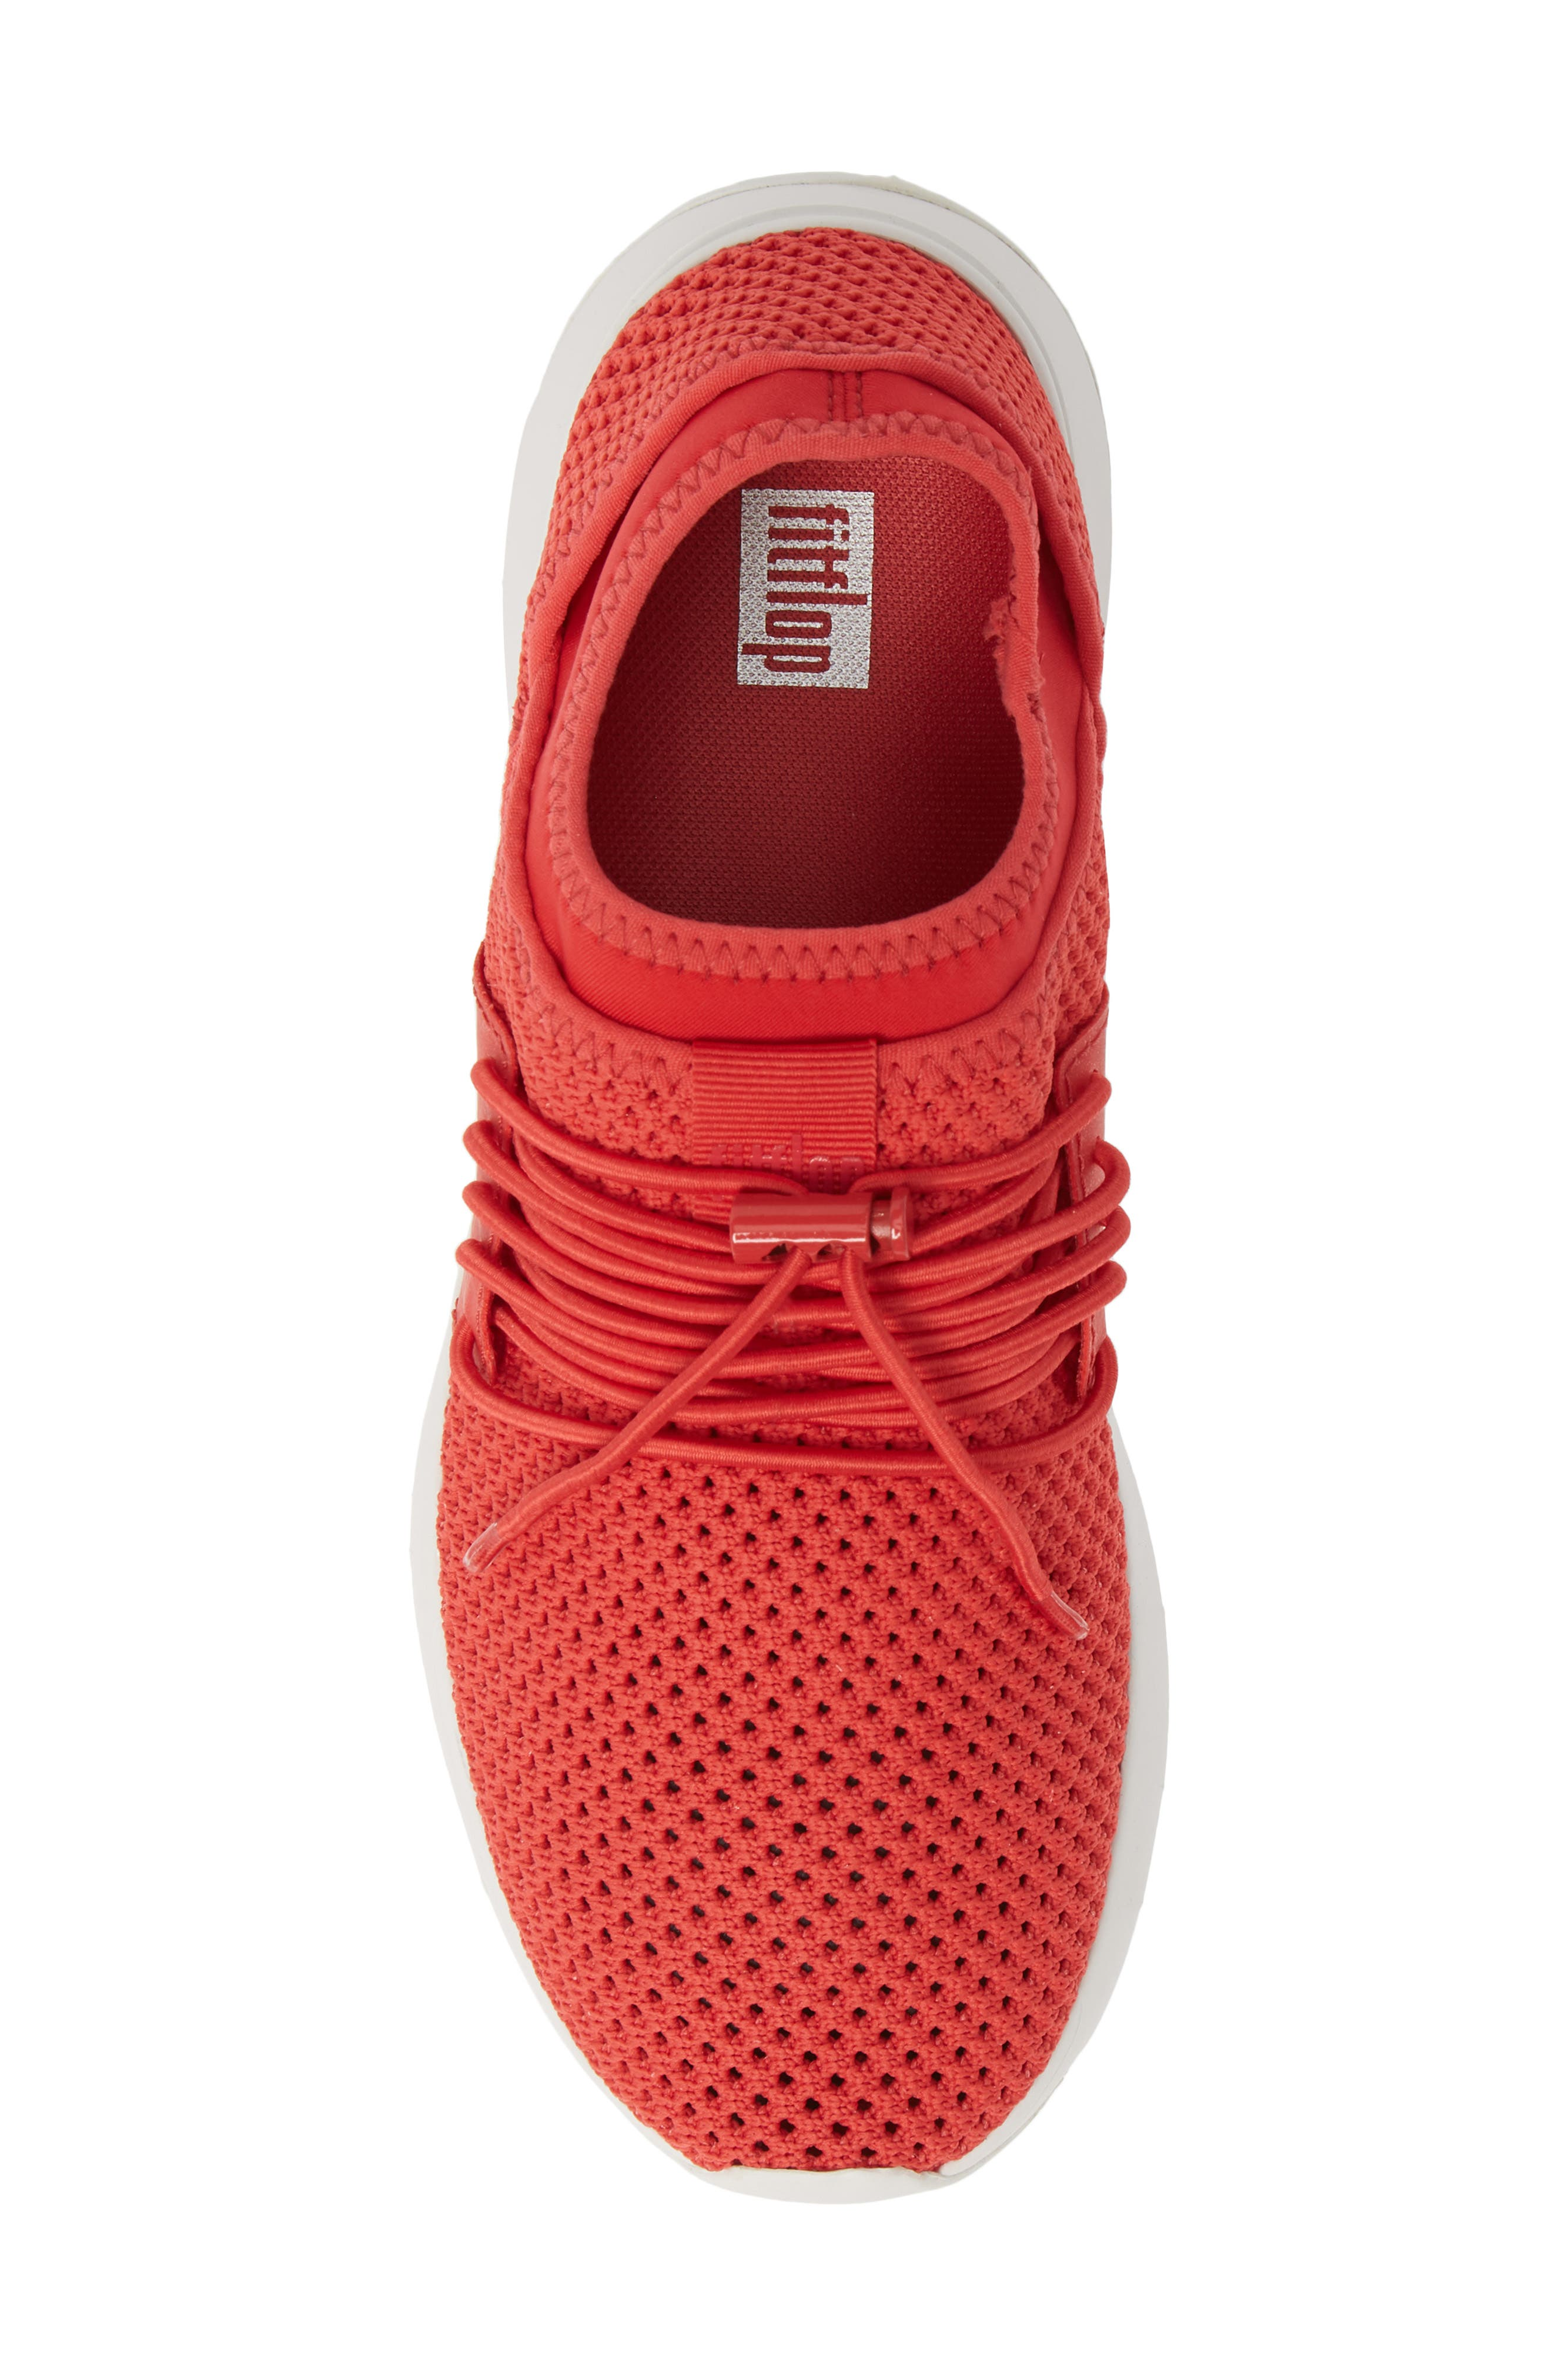 FITFLOP, Airmesh Sneaker, Alternate thumbnail 5, color, PASSION RED